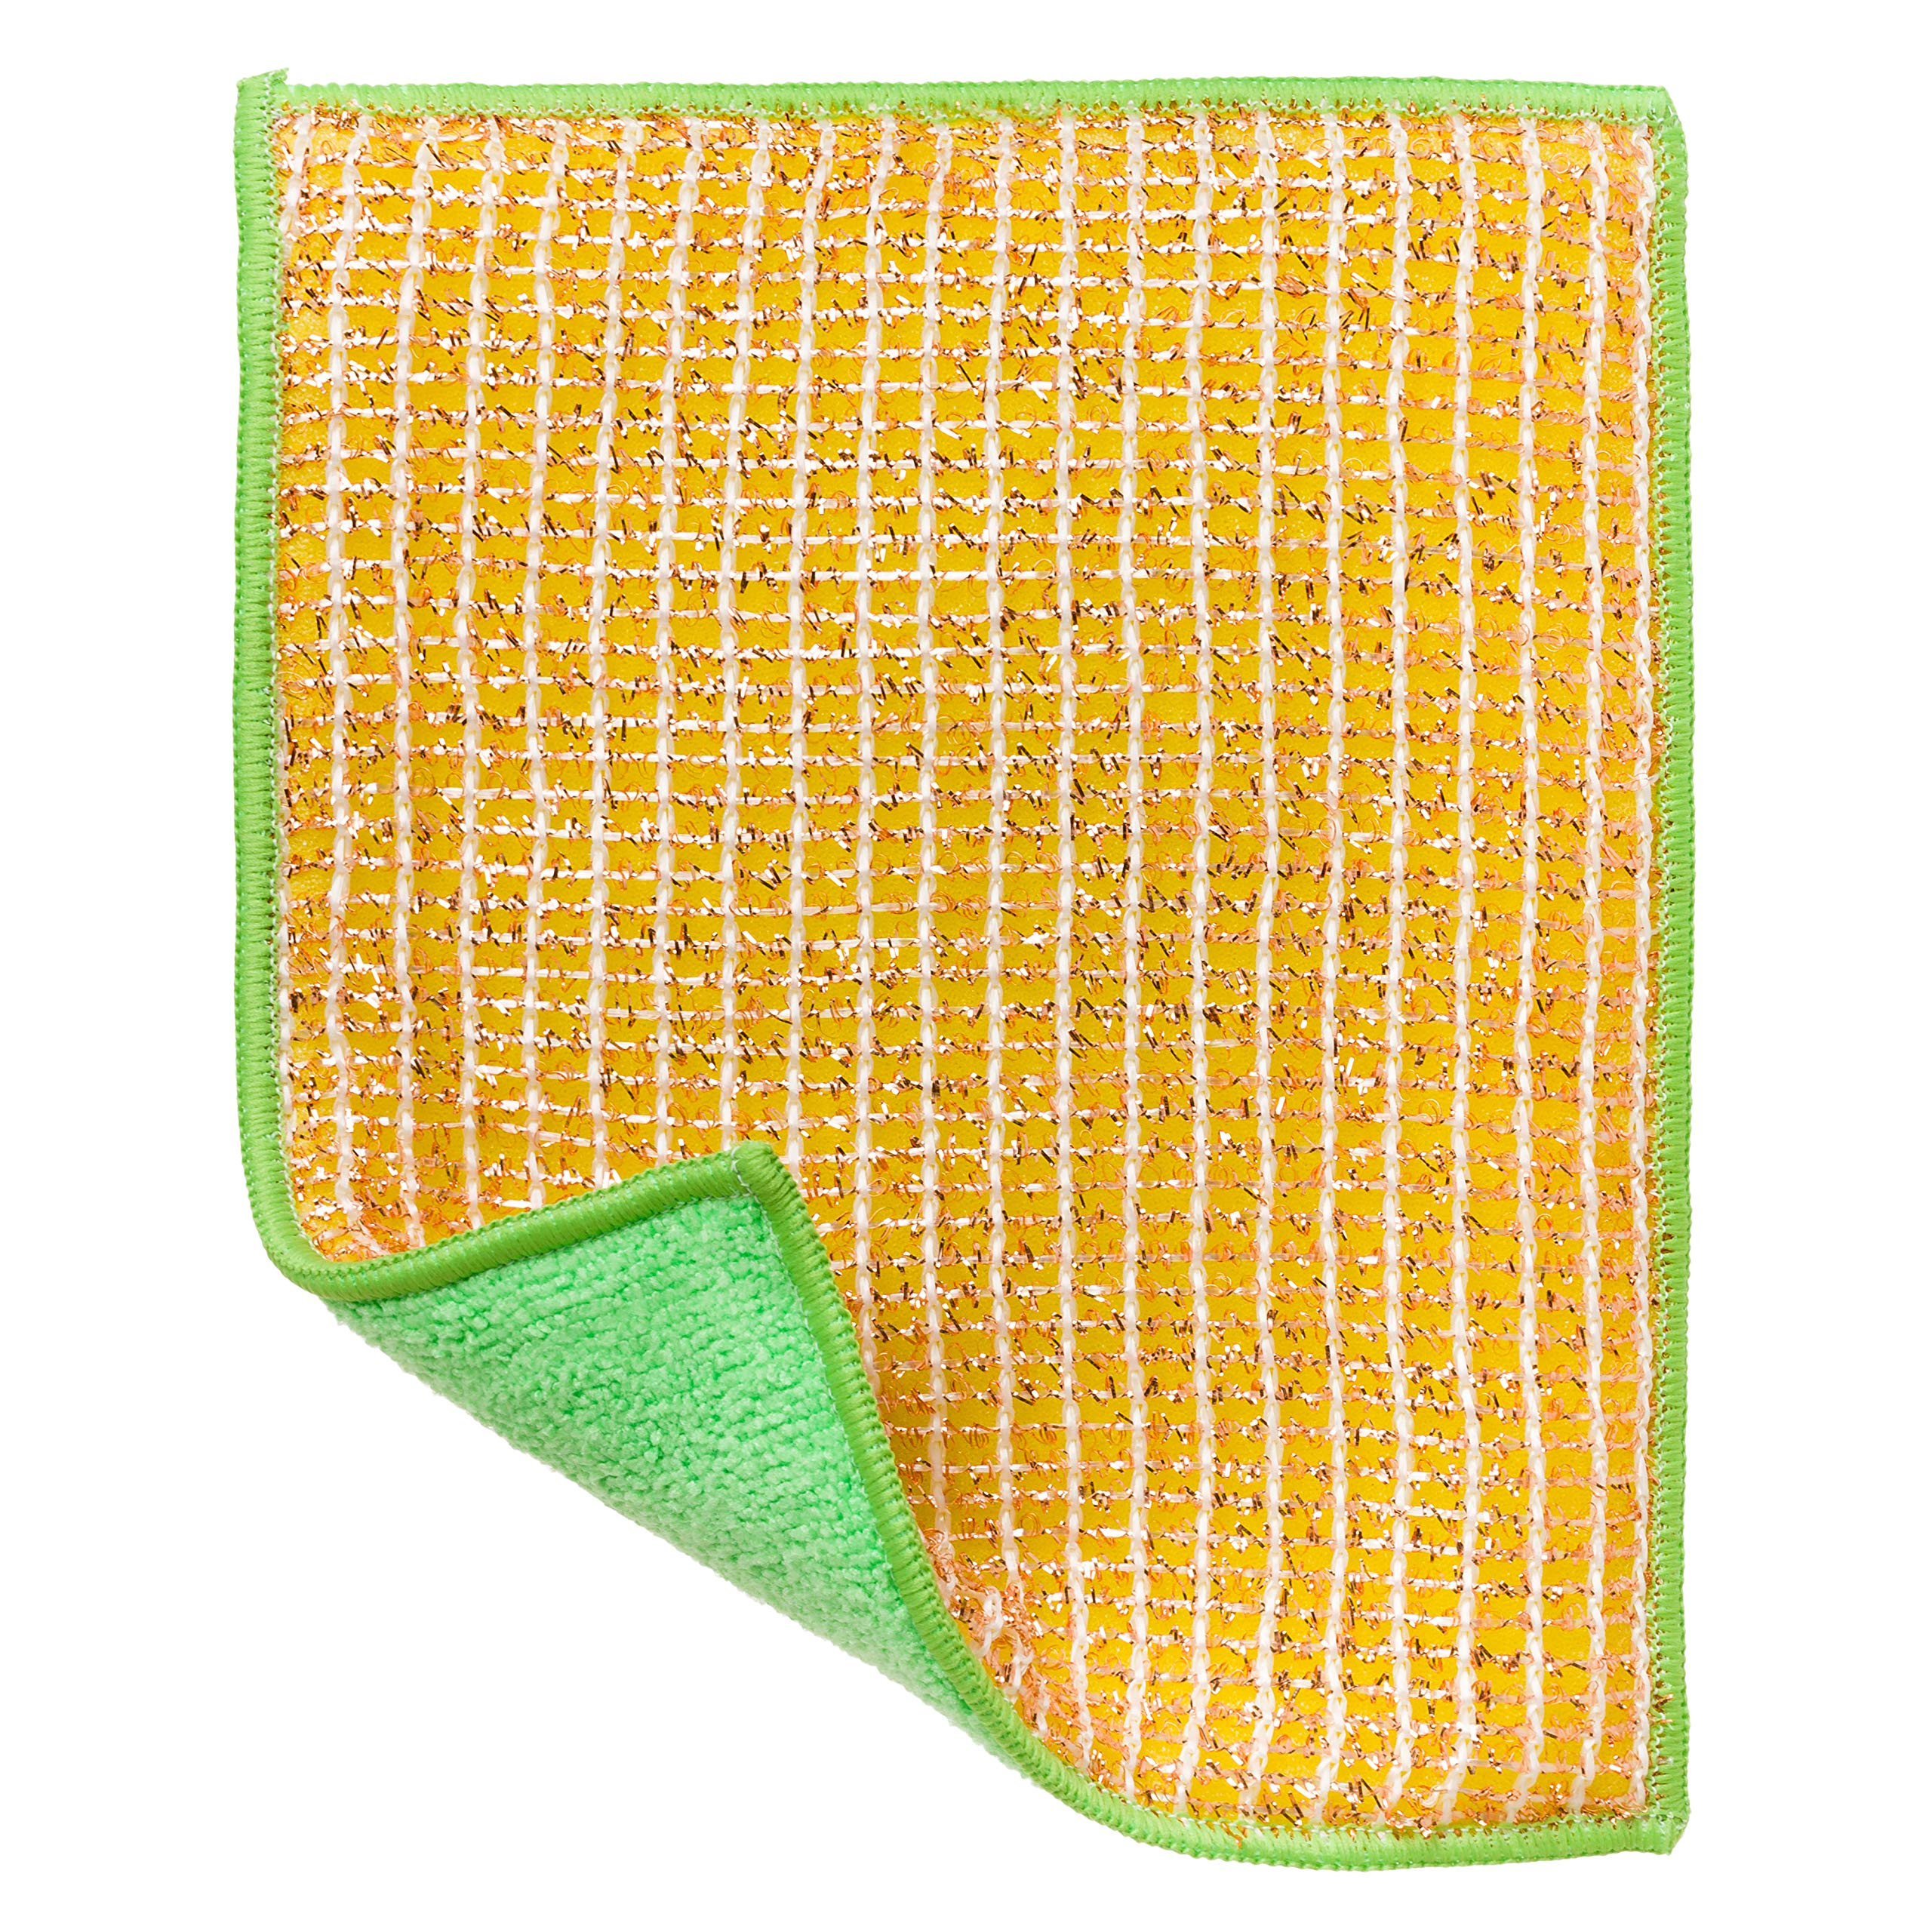 REDECKER Dual Sided Copper and Microfiber Cleaning Cloth, Set of 5, 8 x 6 inches, Non-Abrasive Copper Effectively Scrubs, Absorbent Microfiber Wipes Surfaces Clean, Machine Washable, Made in Germany by REDECKER